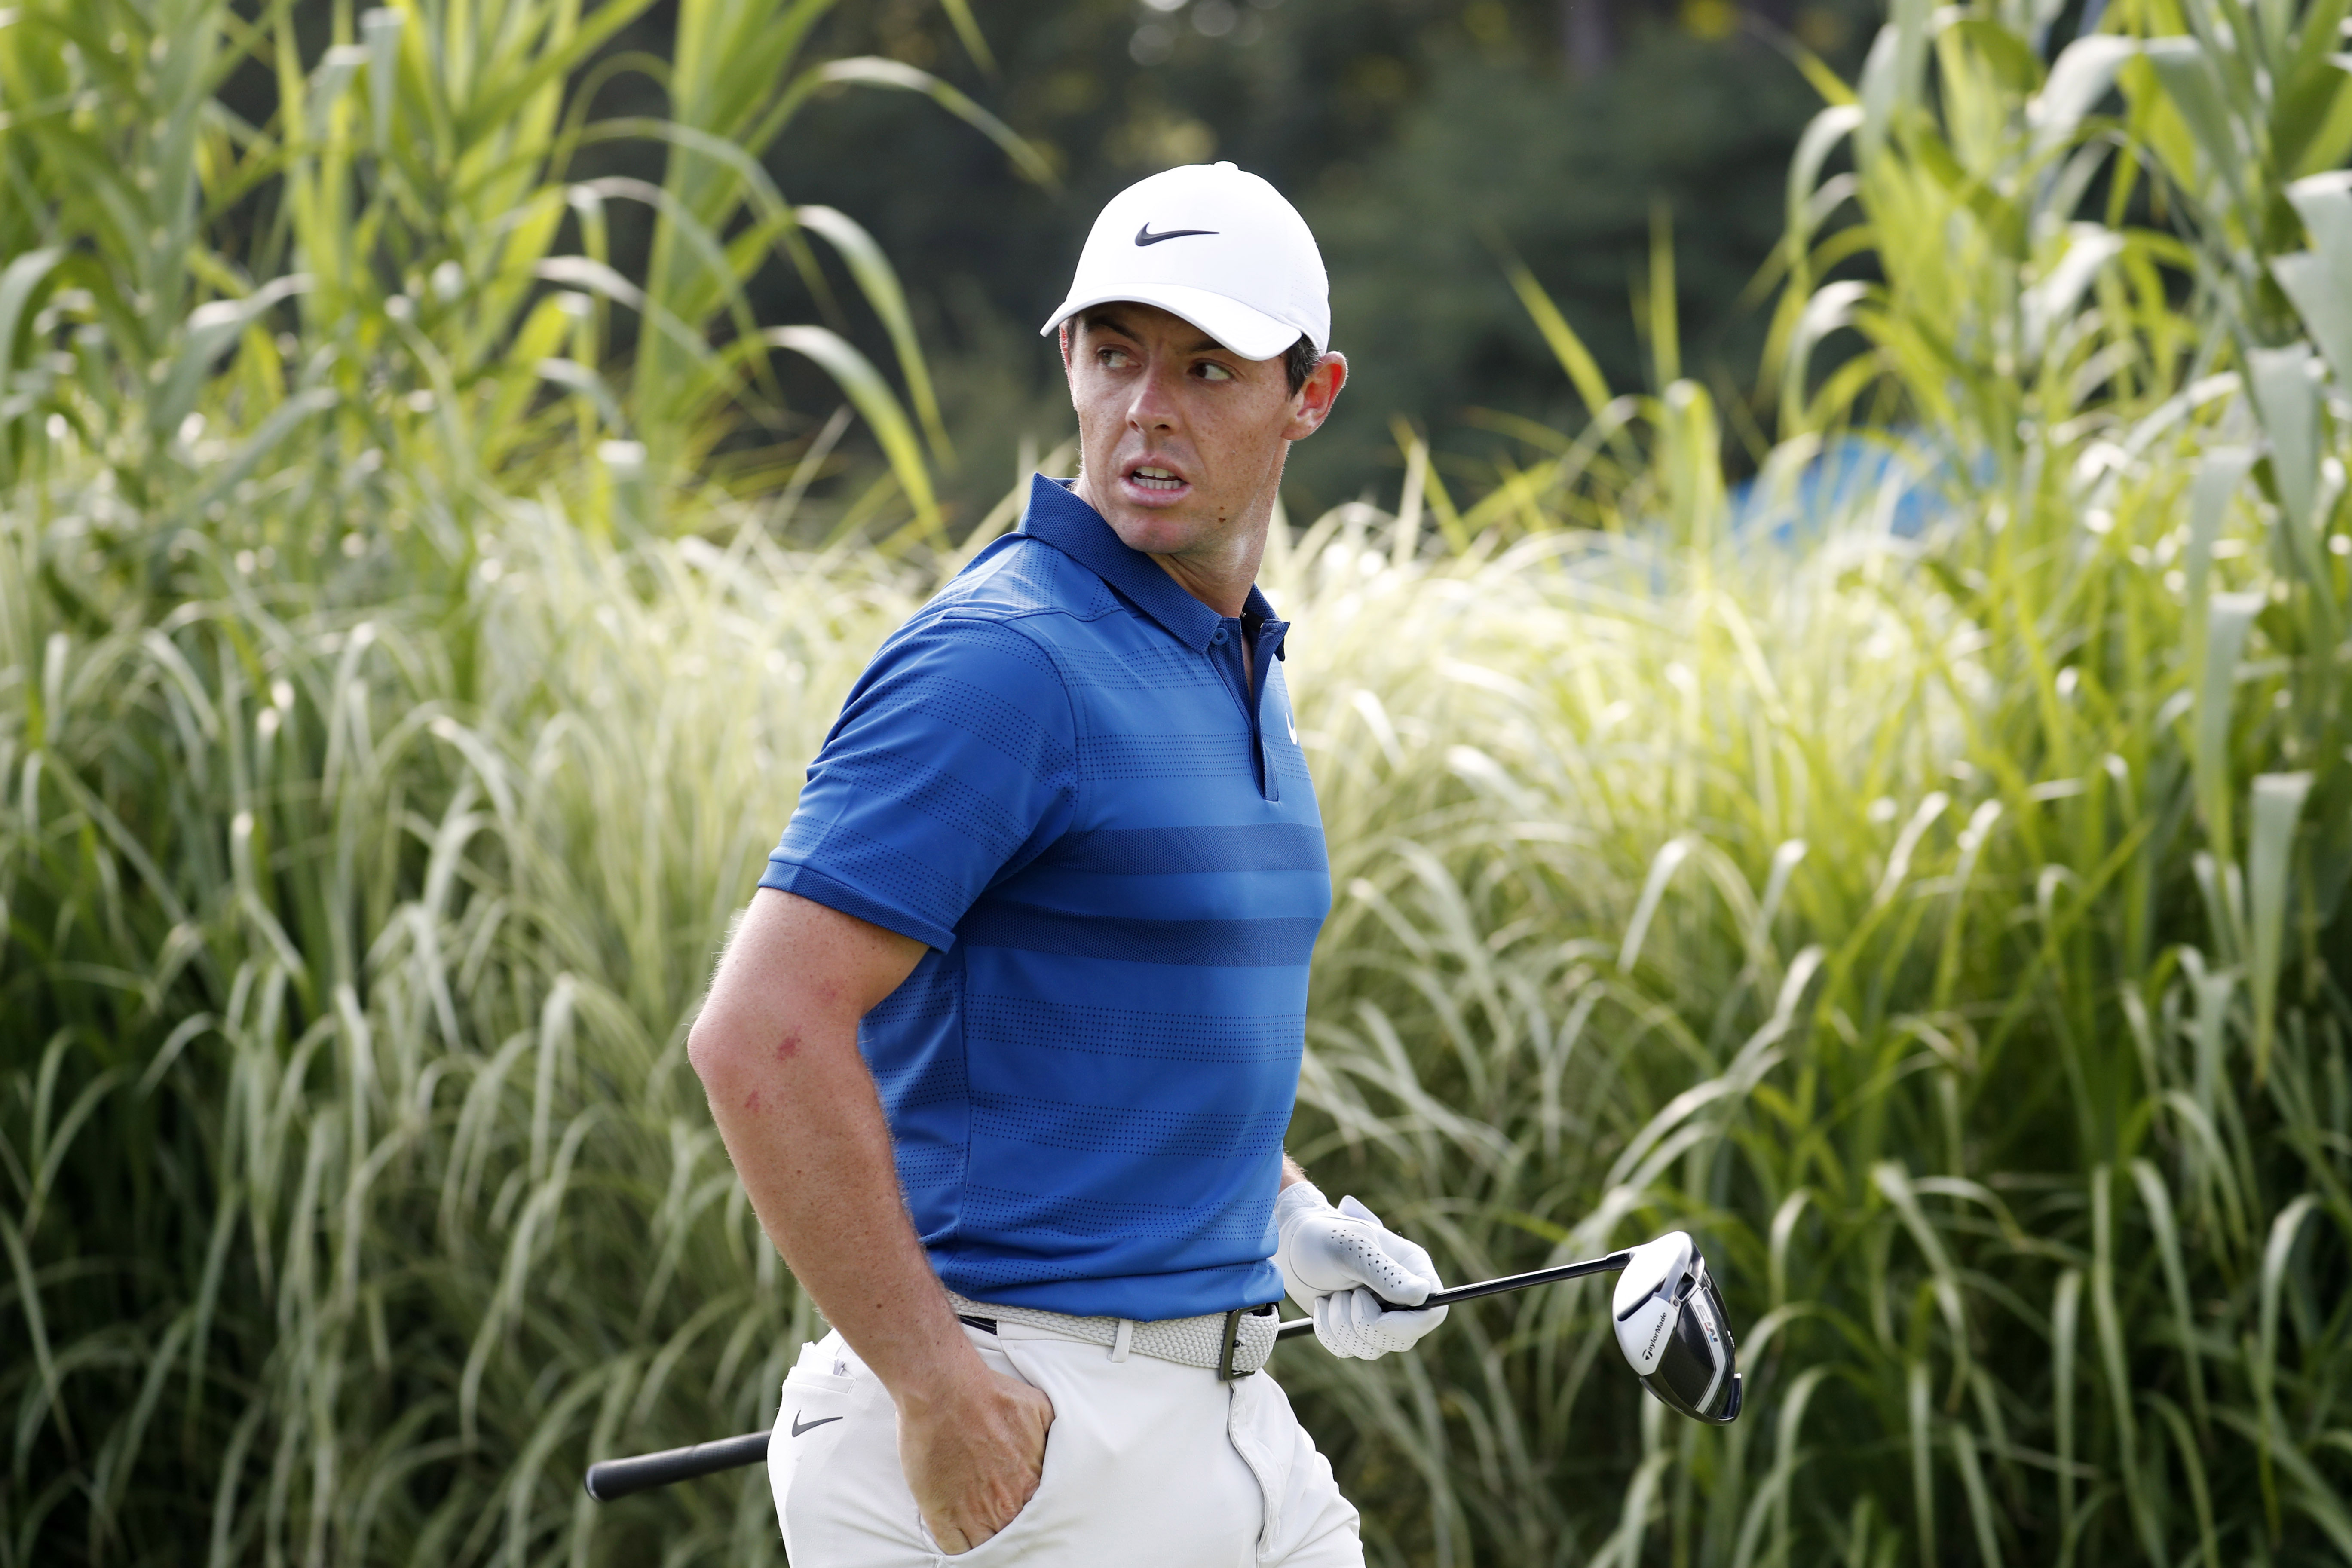 Aug 5, 2018; Akron, OH, USA; PGA golfer Rory McIlroy walks the 16th hole during the final round of the WGC - Bridgestone Invitational golf tournament at Firestone Country Club - South Course. Mandatory Credit: Brian Spurlock-USA TODAY Sports